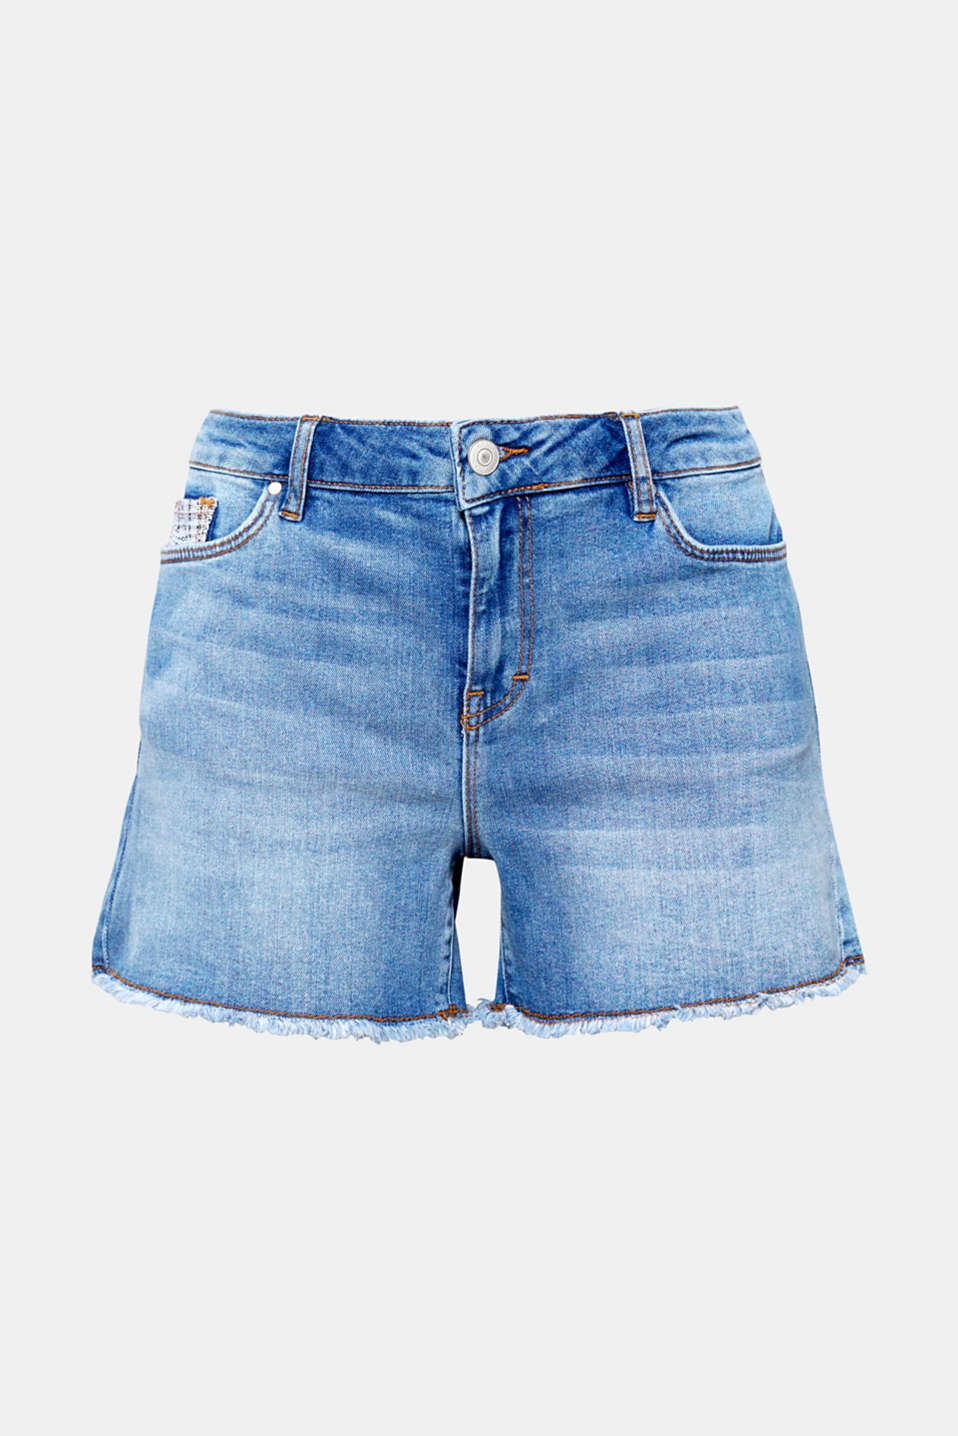 This summer, a pair of denim shorts is completely essential and we love this pair for their frayed leg hems and fabric appliqués!